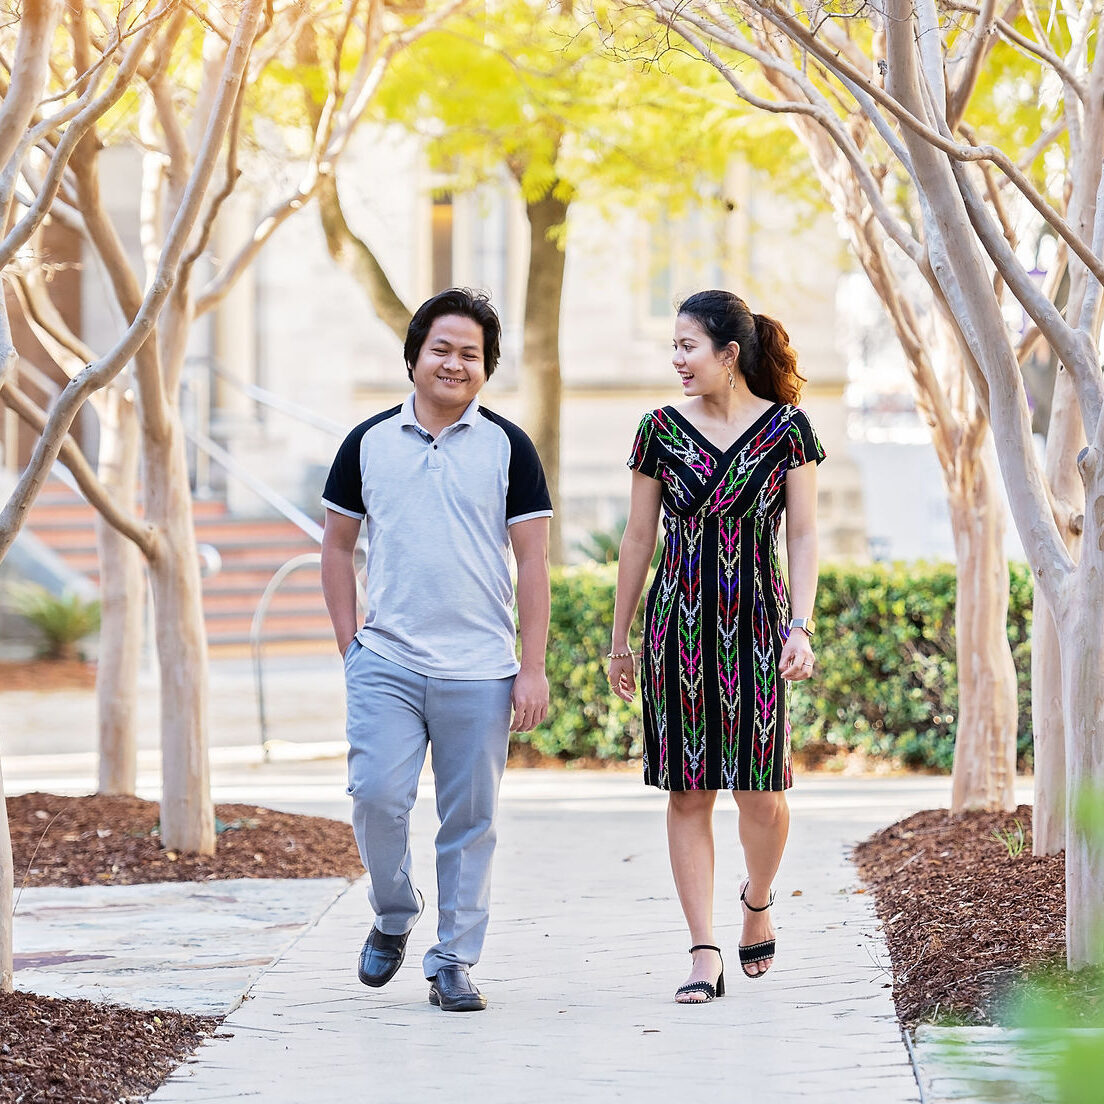 Two people walking and talking together